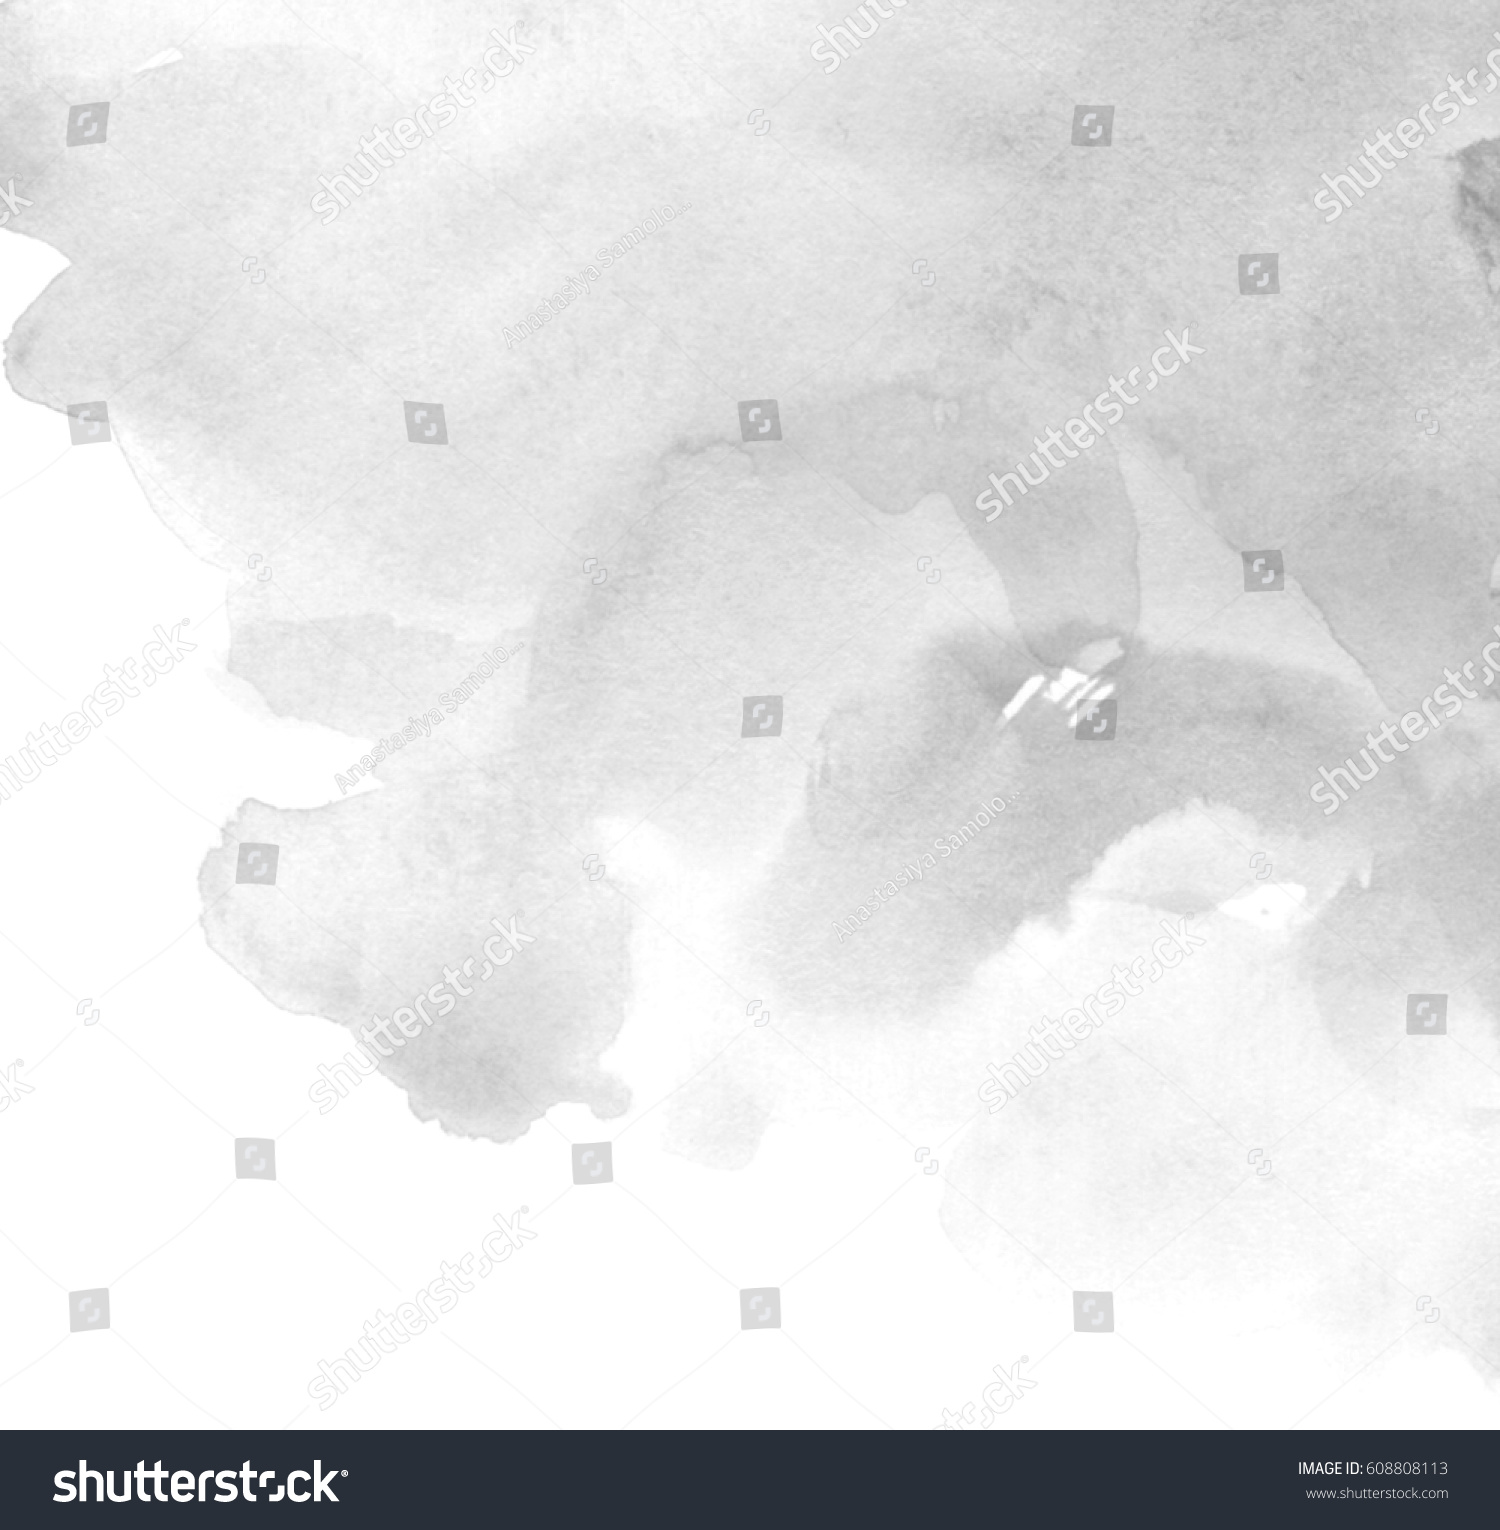 Amazing Wallpaper Grey Watercolor - stock-photo-gray-watercolor-hand-drawn-paper-texture-isolated-splash-background-for-card-wallpaper-print-608808113  Trends_813392.jpg